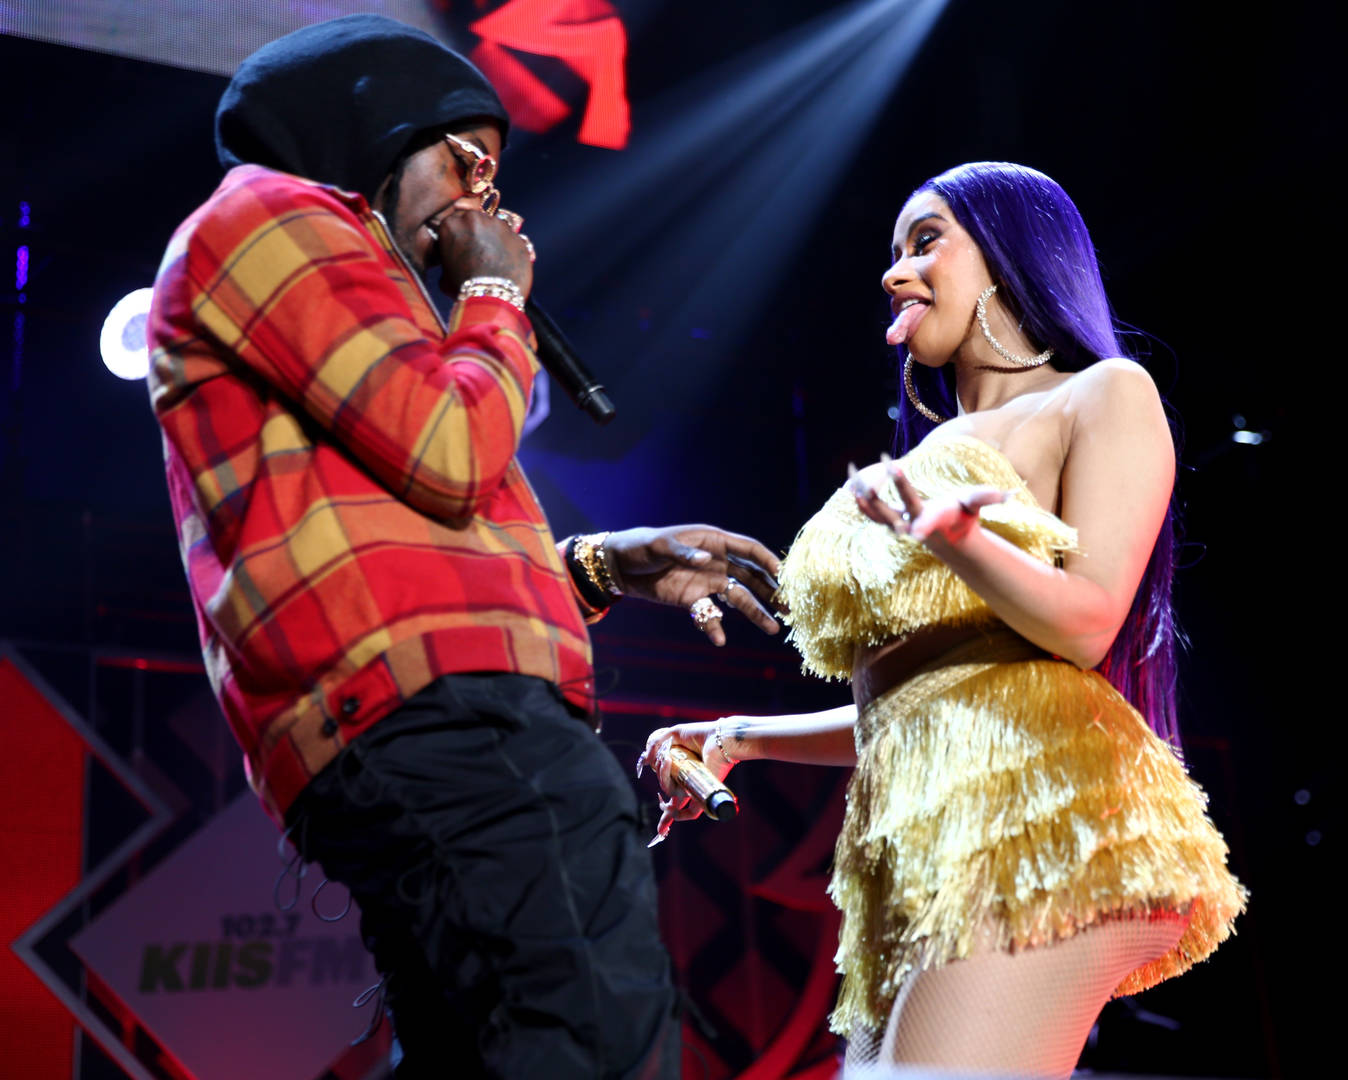 Cardi B 'working things out' with Offset & fans are wilding!